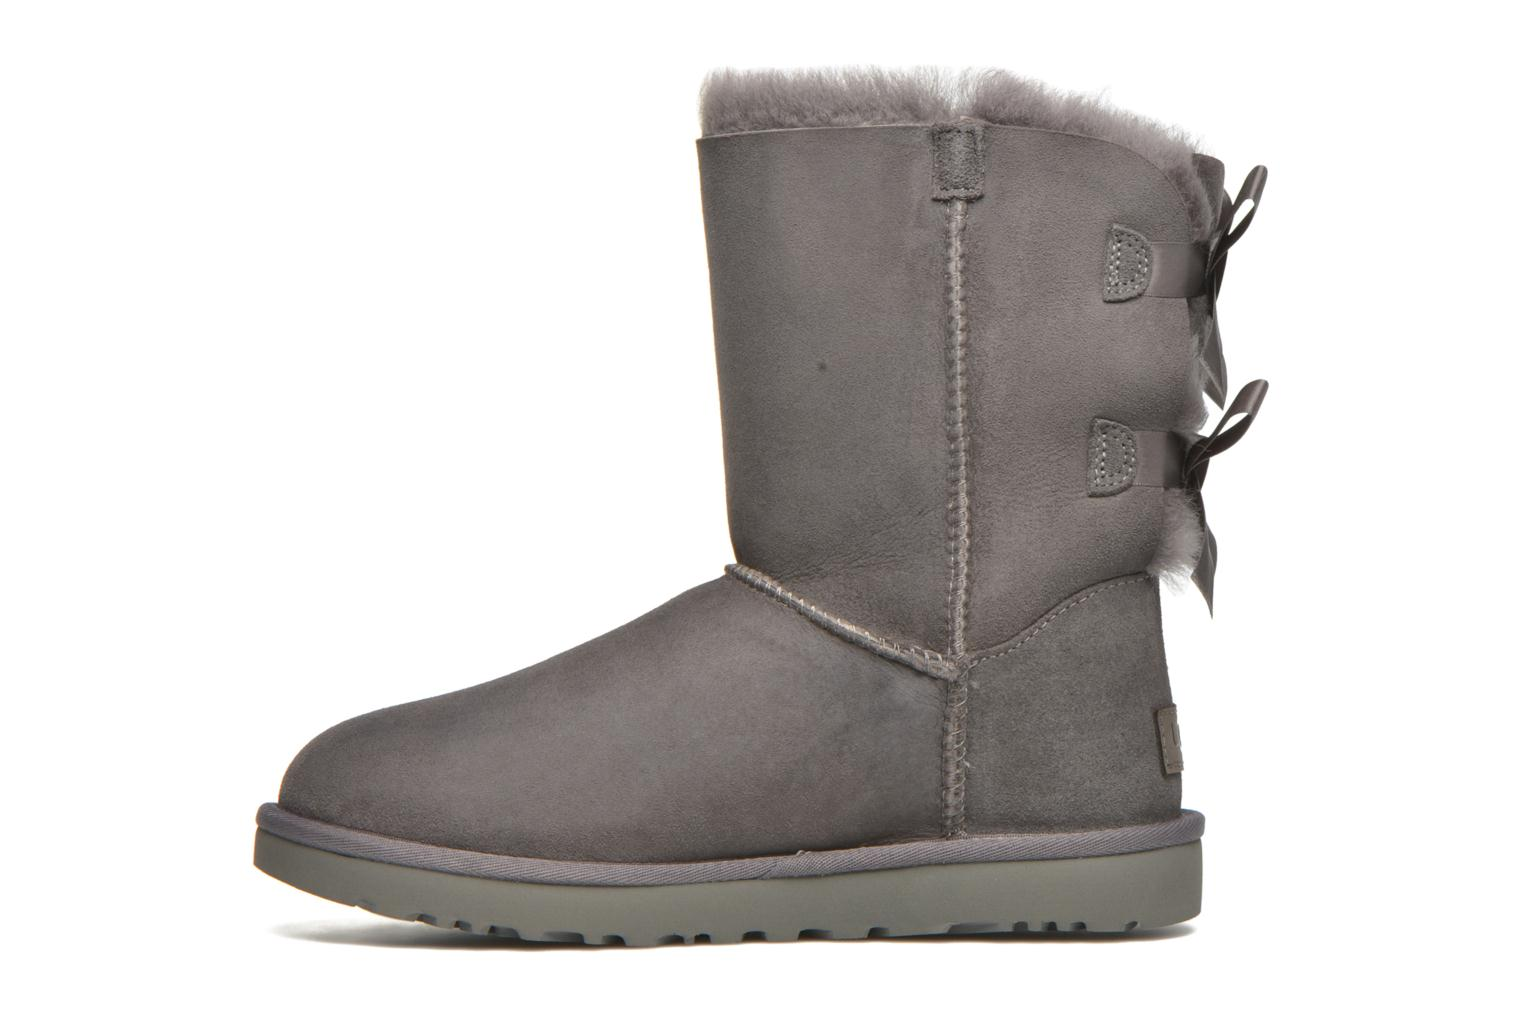 Bottines et boots UGG W Bailey Bow II Gris vue face